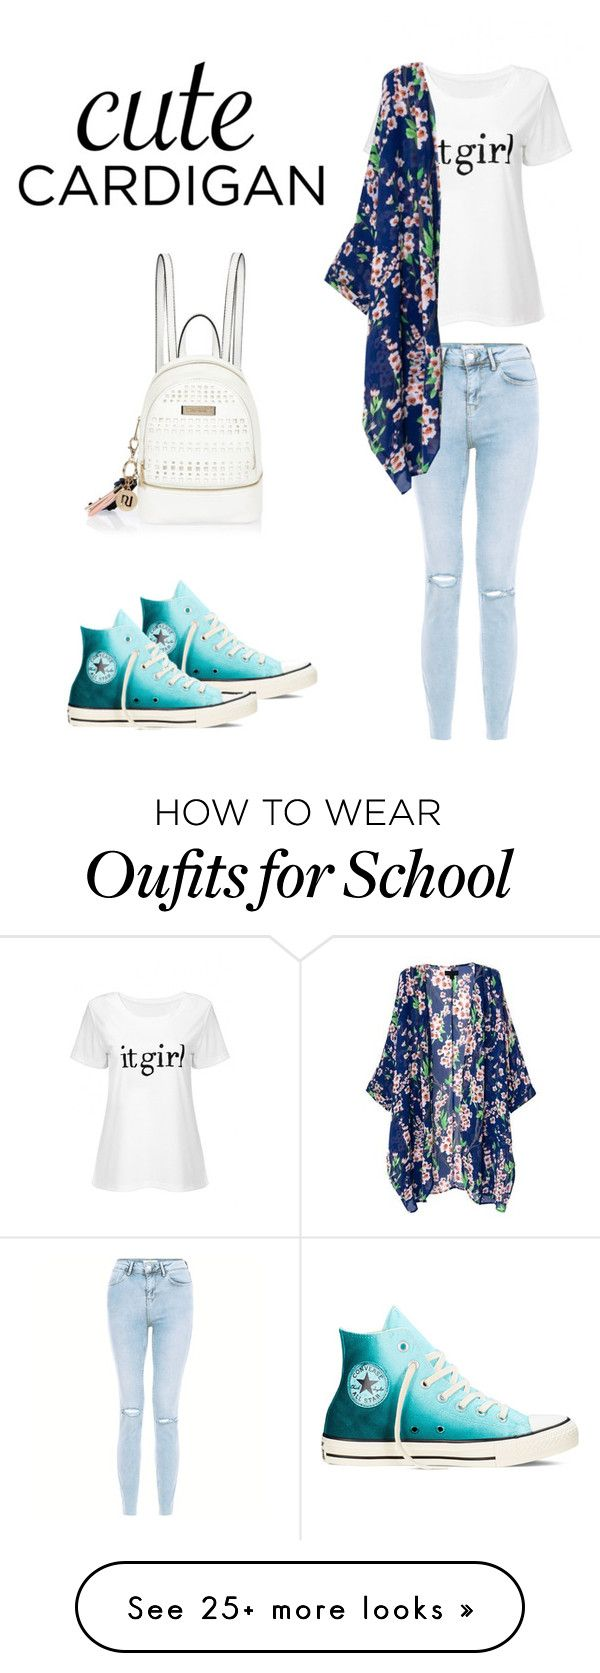 """""""School is not over yet """" by biafangirl on Polyvore featuring New Look, Converse, River Island, cutecardigan and springlayers"""